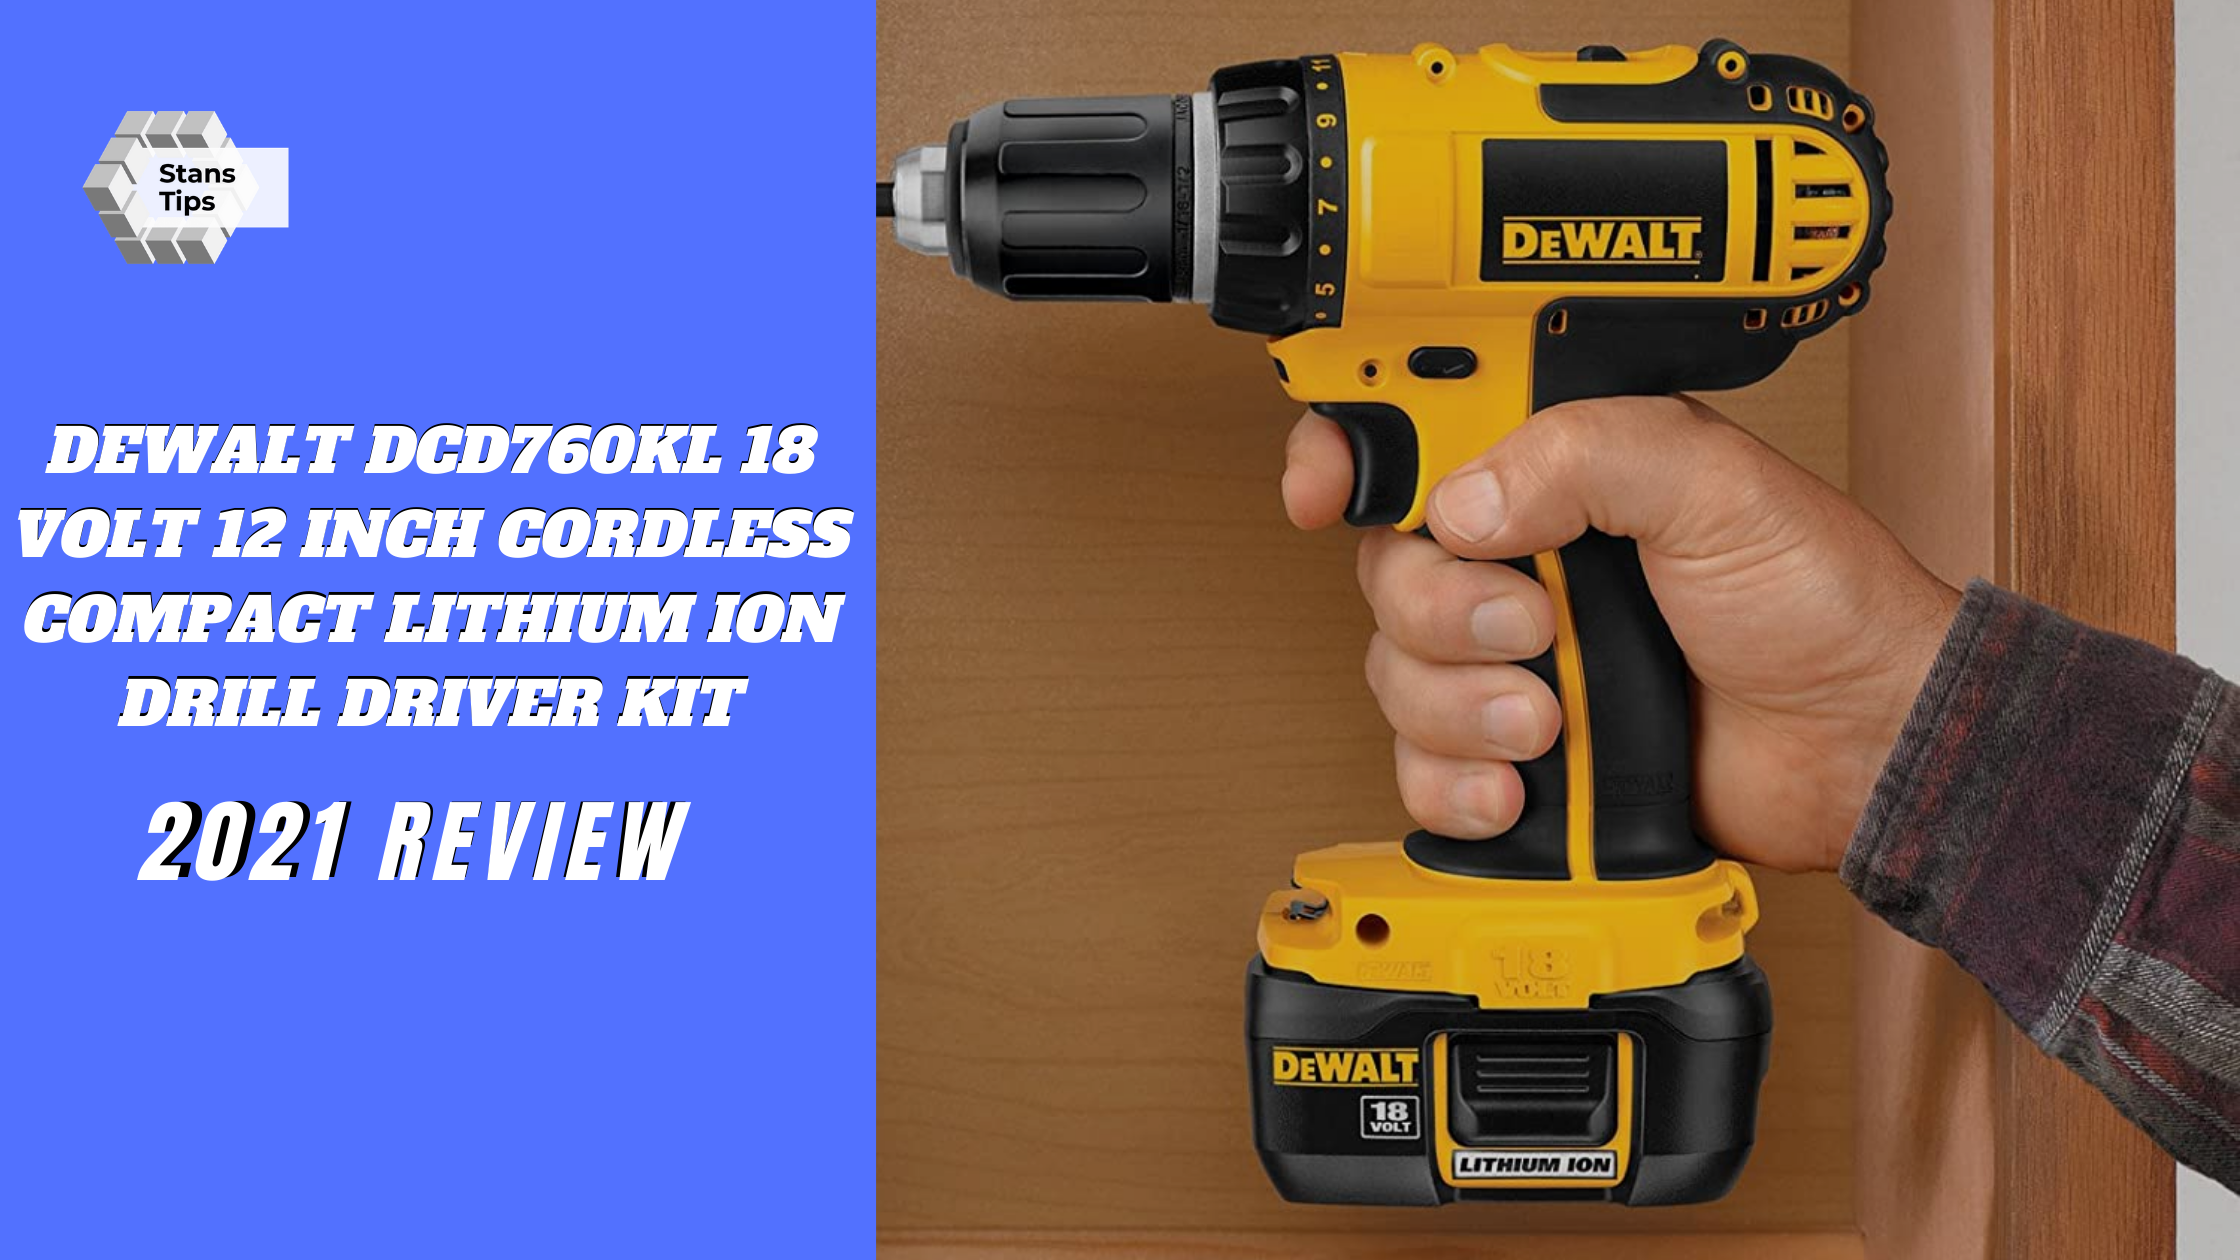 Dewalt dcd760kl 18 volt 12 inch cordless compact lithium ion drill driver kit review